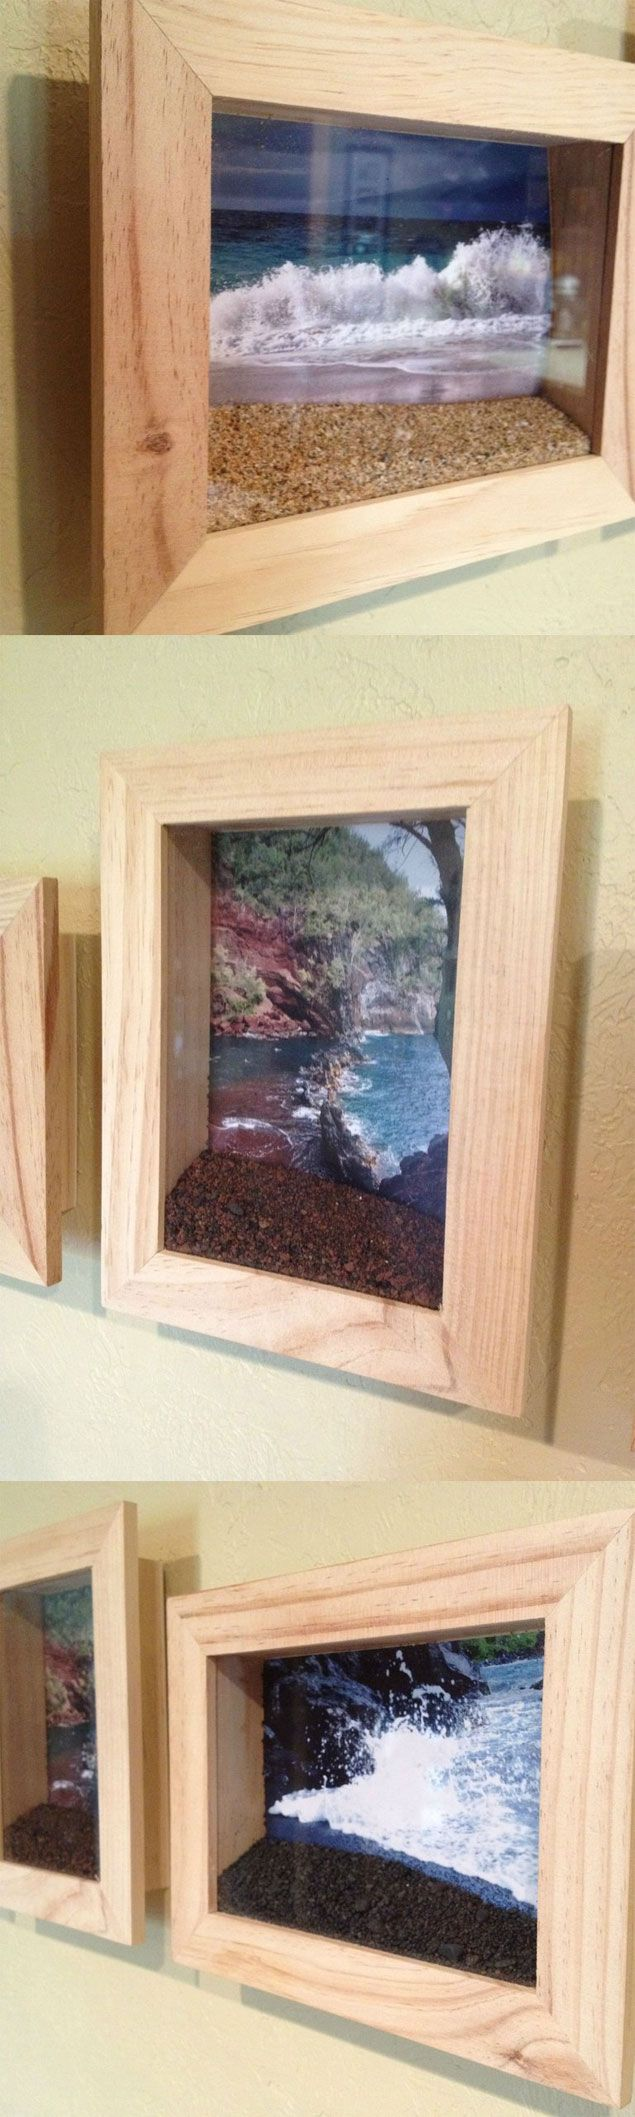 Put a picture of the beach you visited in a shadow box frame and fill the bottom with sand from that beach. Much neater than a random jar of sand. Love this! I would put shells in there too.